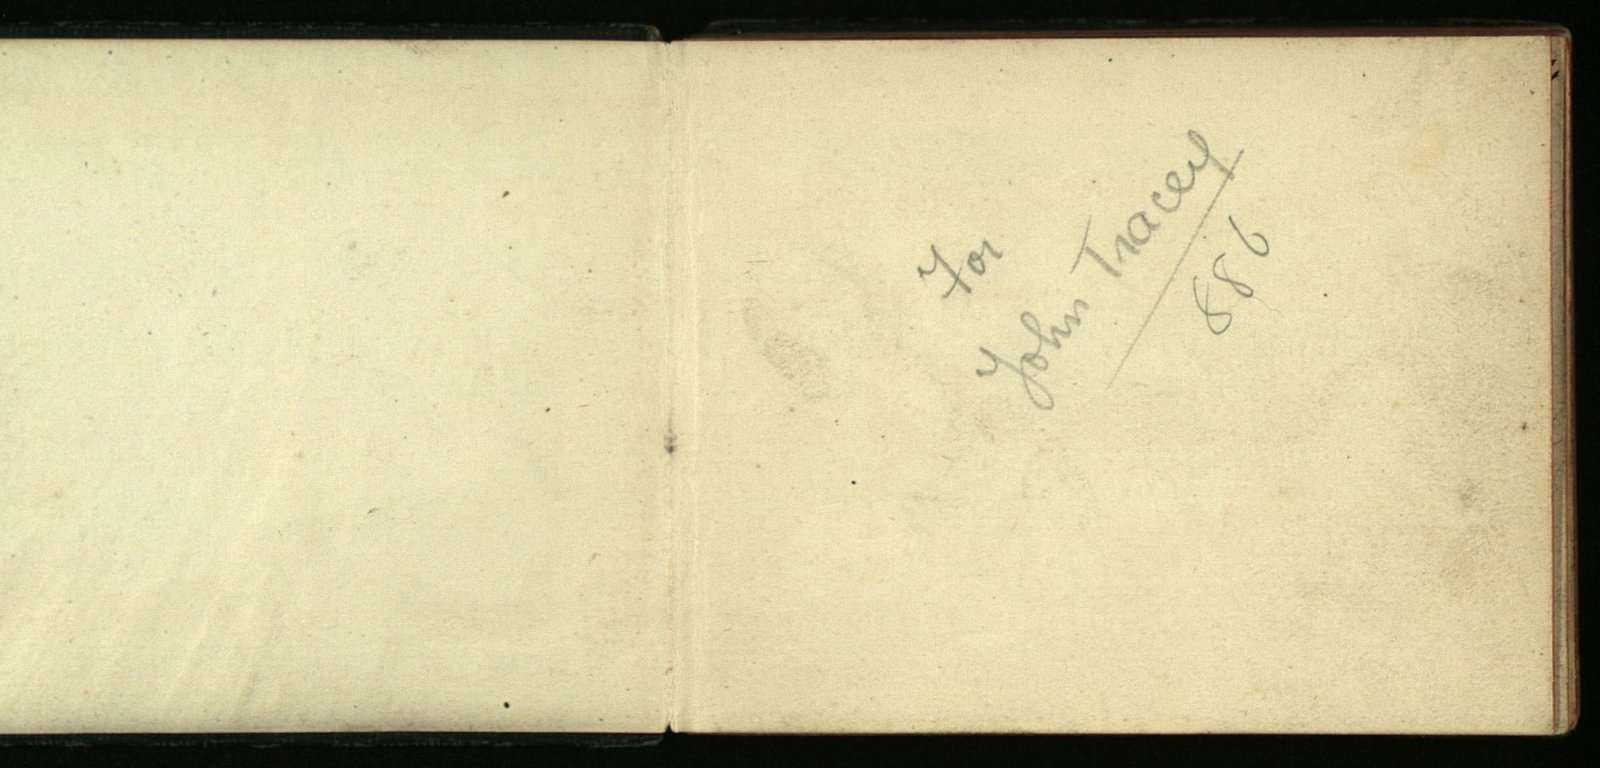 Image - The cover and inside dedication page of the autograph book